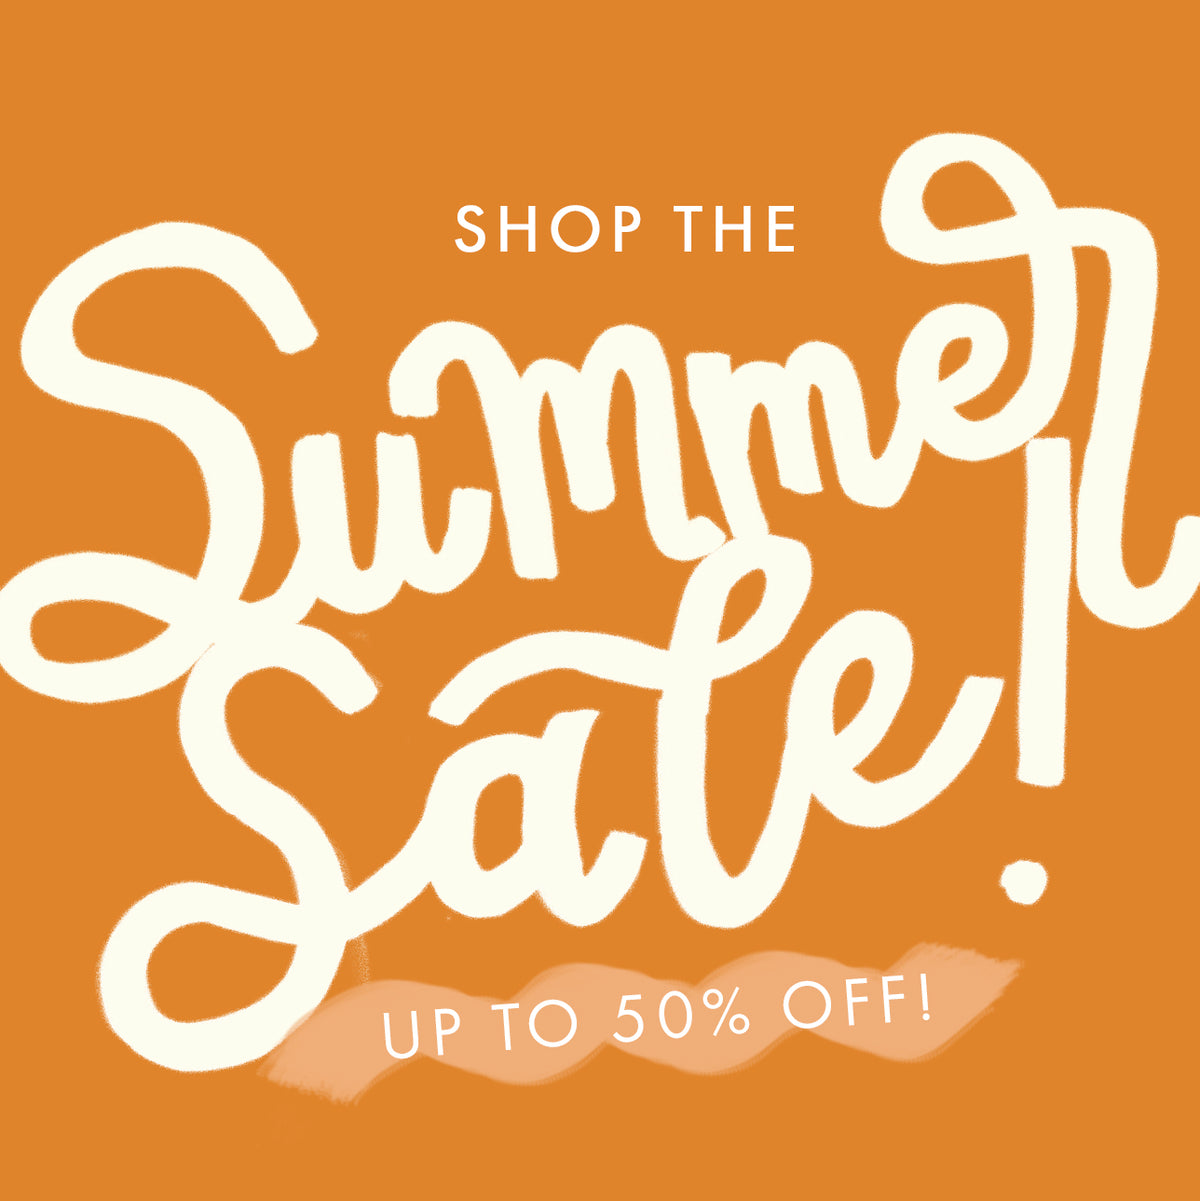 It's Summer Sale Time!